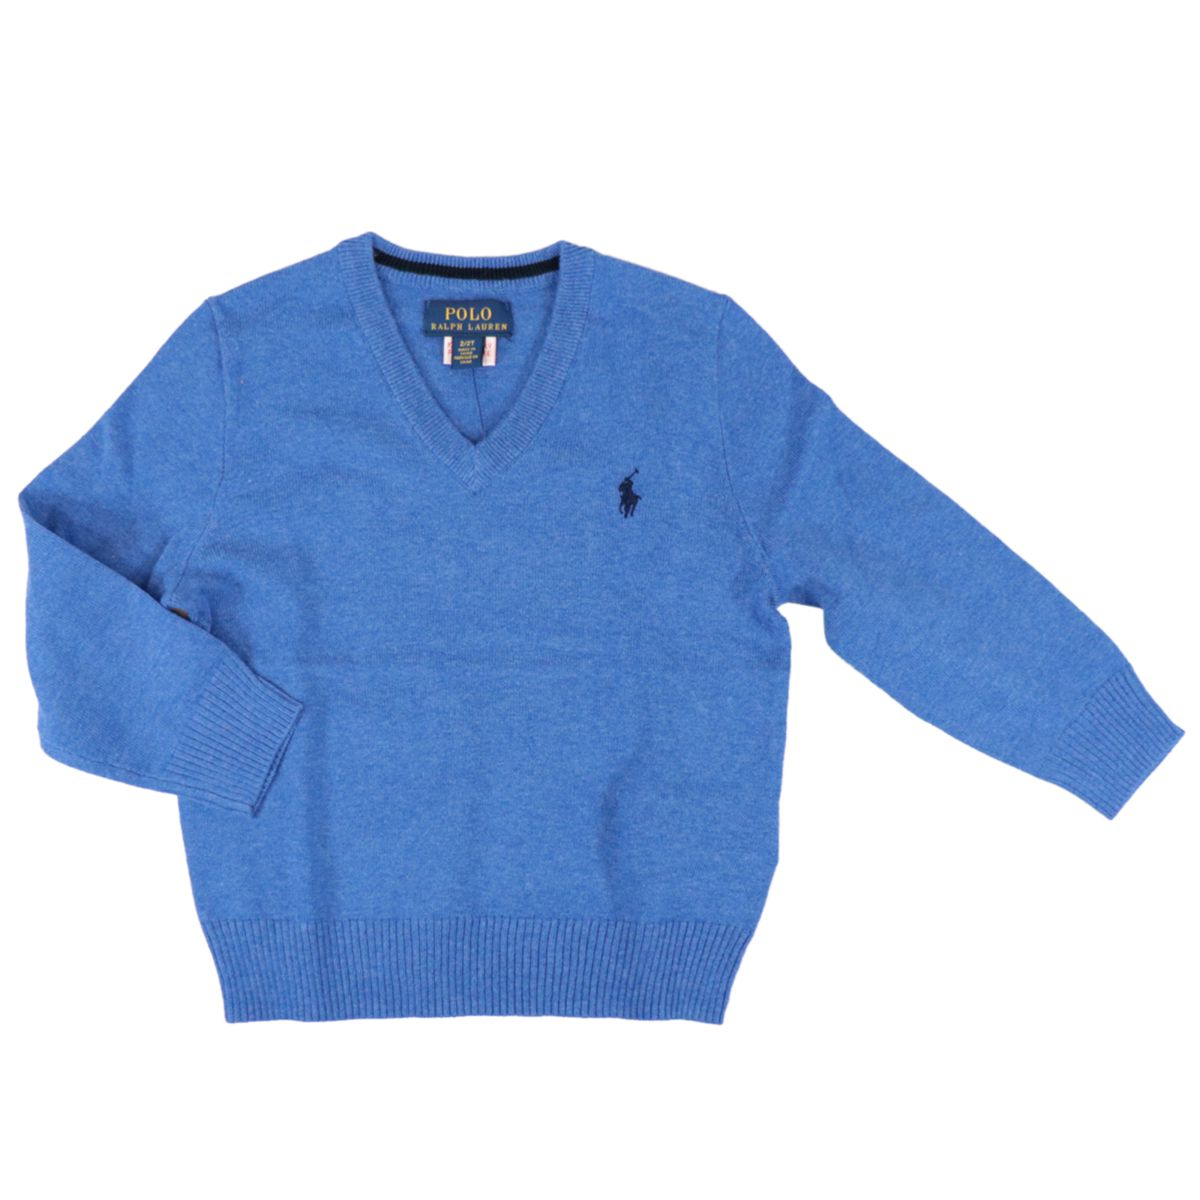 Classic cotton pullover with V-neck and logo Dockside blue Polo Ralph Lauren